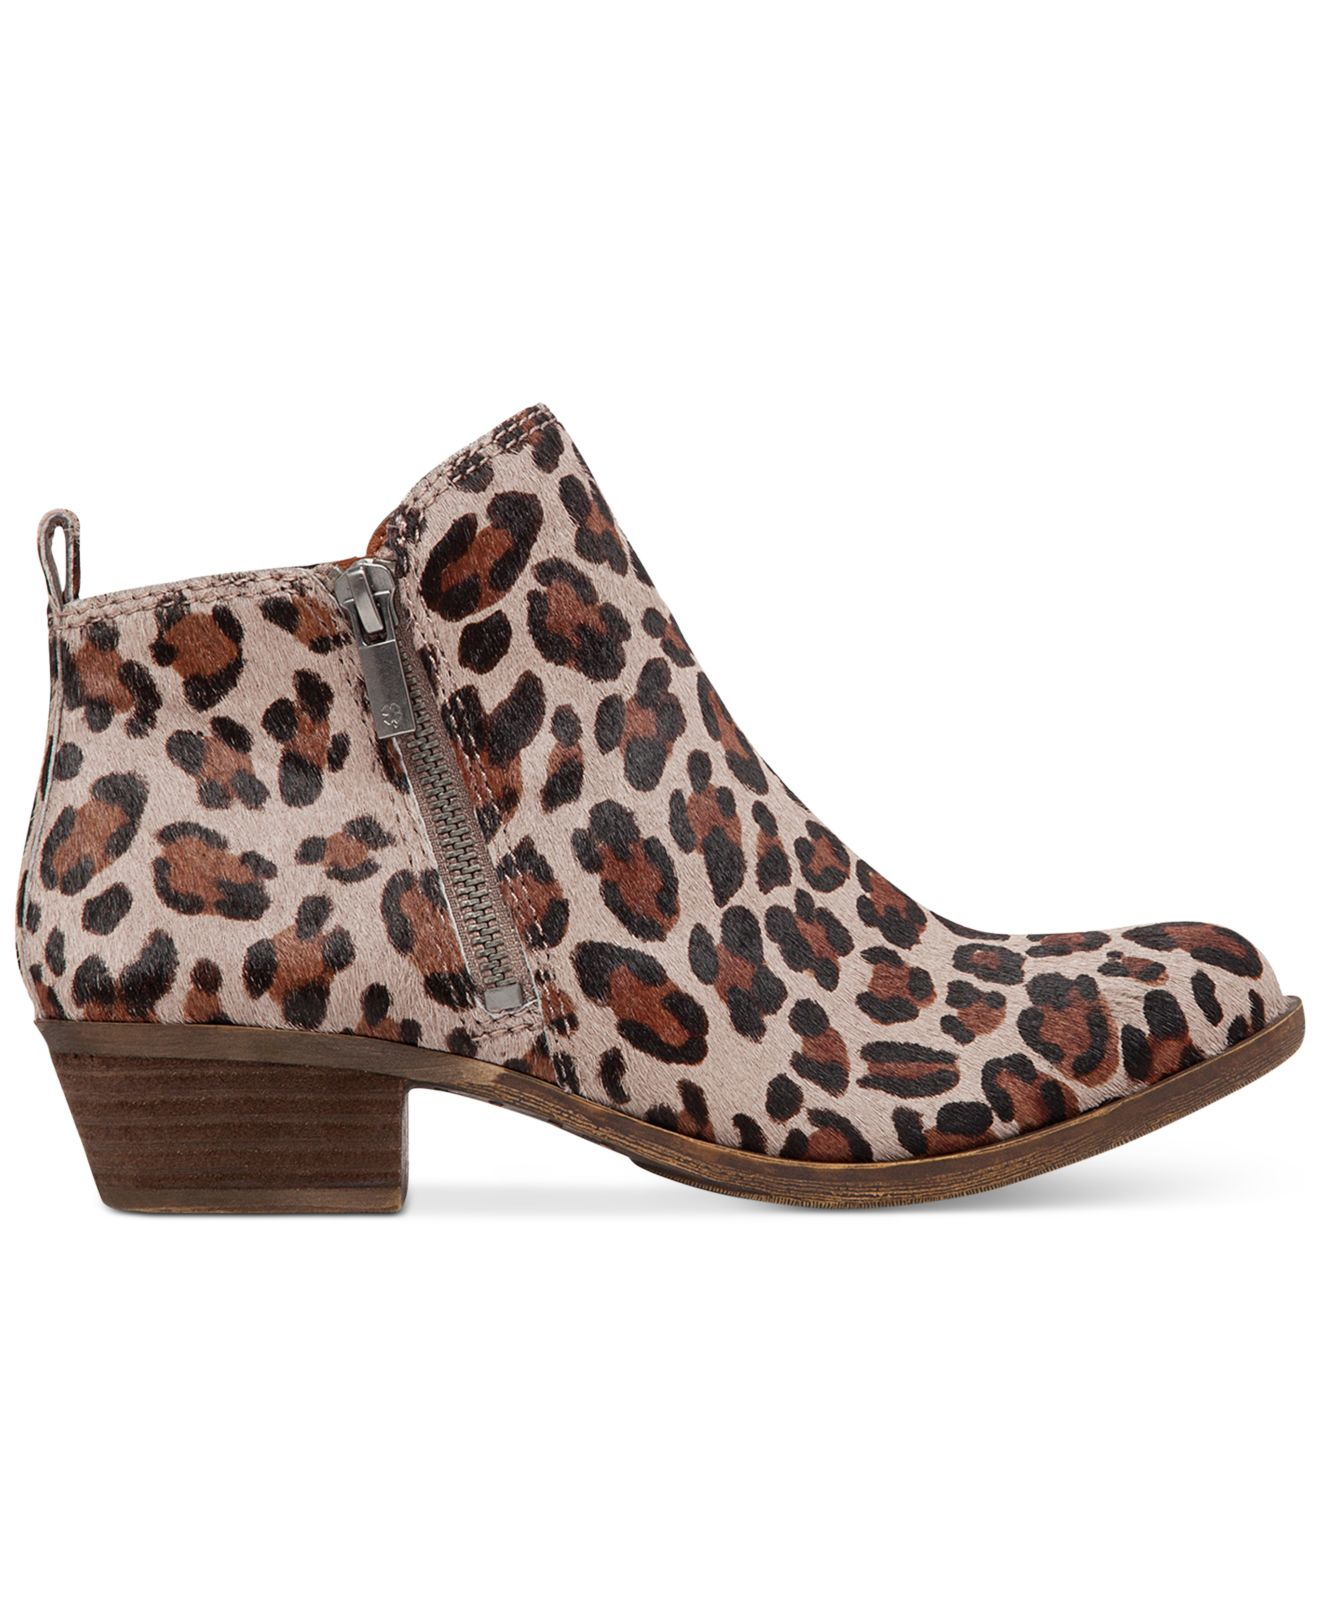 Lucky Brand Leopard Shoes